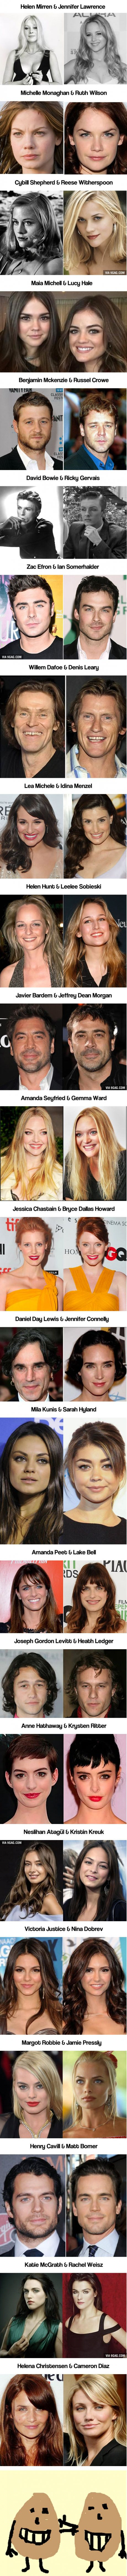 17 Best Ideas About Celebrity Doppelganger On Pinterest